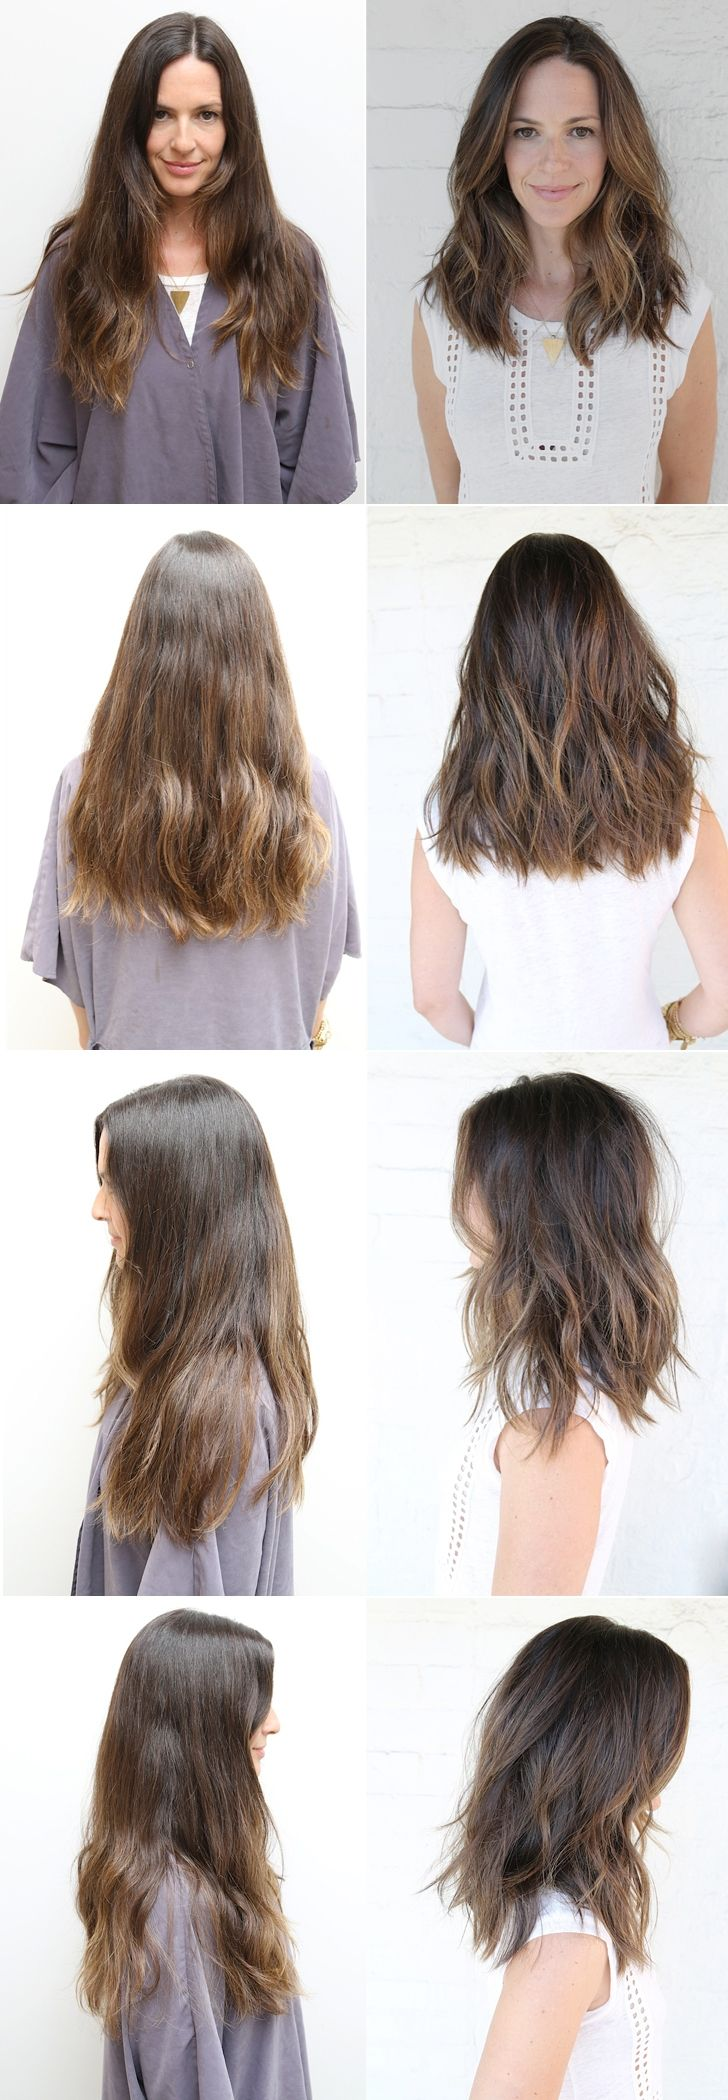 soft A-line undercut with long layers: Midlength Haircut, A Line Haircut Long, Mid Length Hair Cut, Mid Hair Cut, Soft A Lin, Long Layered, A Lin Undercut, Long A Line Hair Cut, Mid Length Haircut